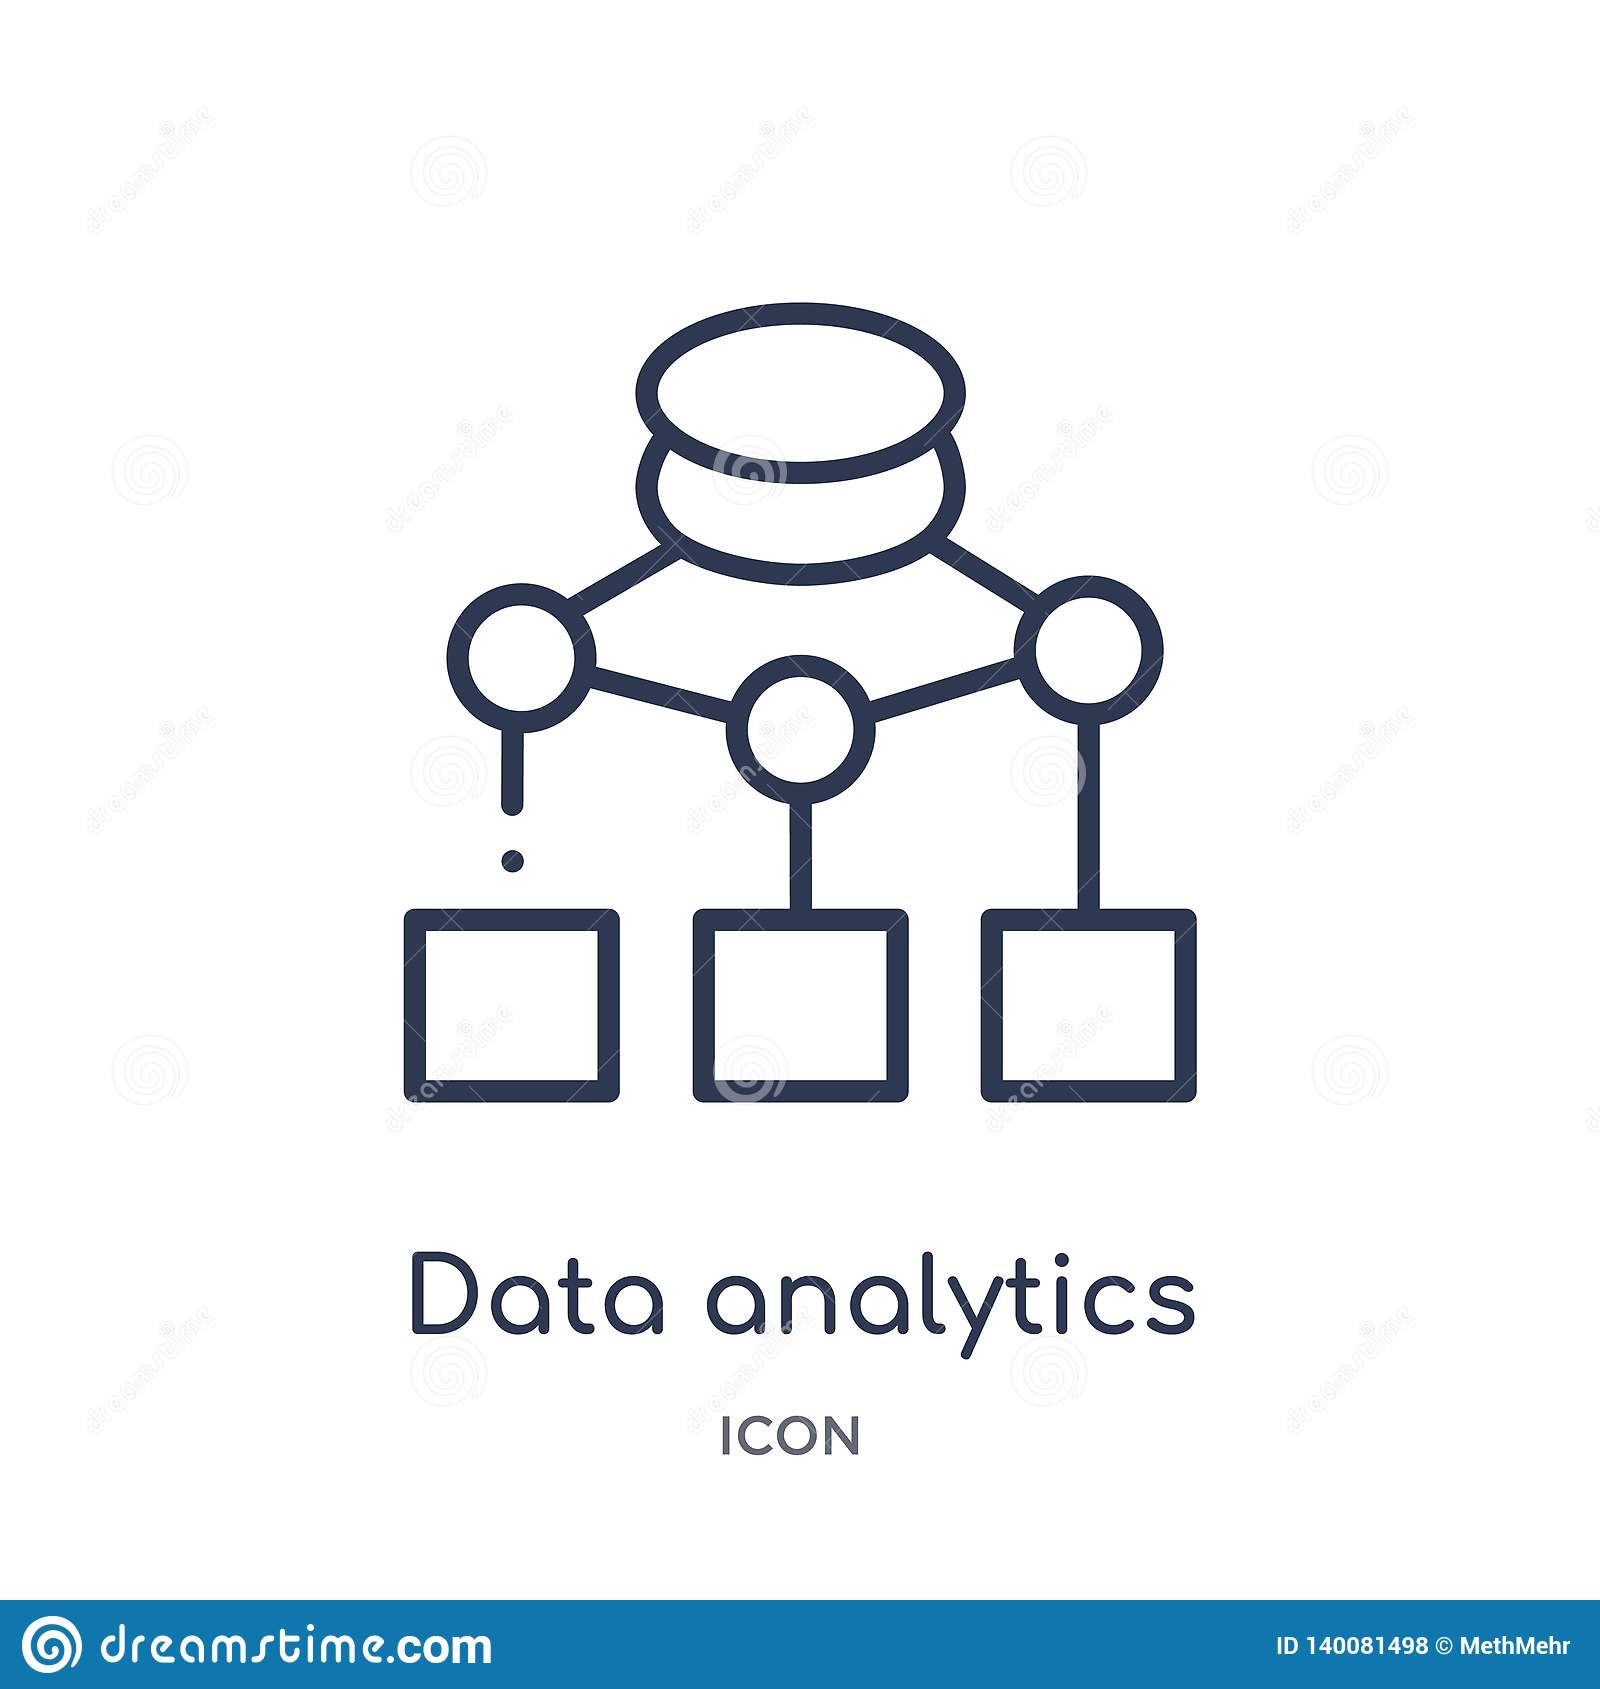 data analytics flow chart icon from user interface outline collection. Thin line data analytics flow chart icon isolated on white